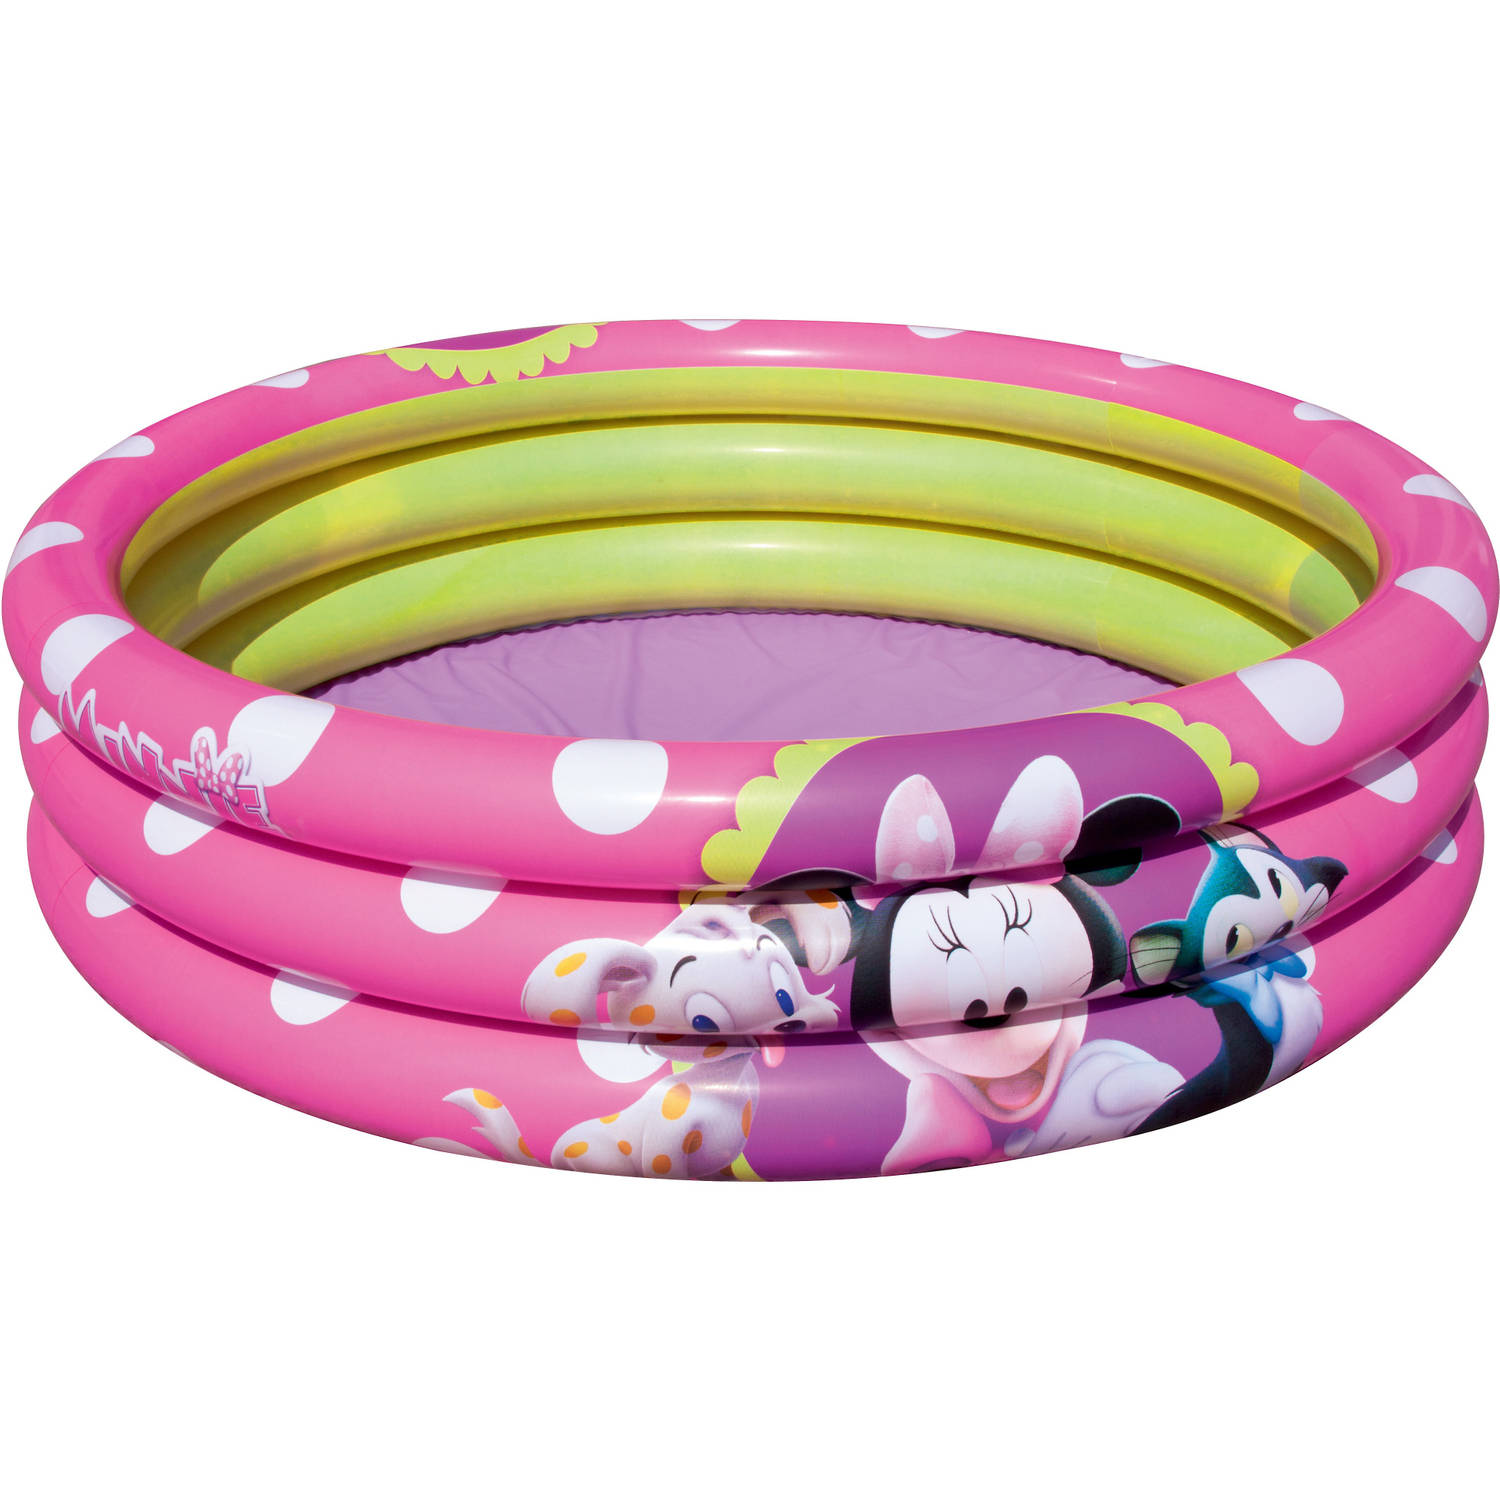 Minnie mouse 3 rings kinderzwembad blokker for Kinderzwembad blokker